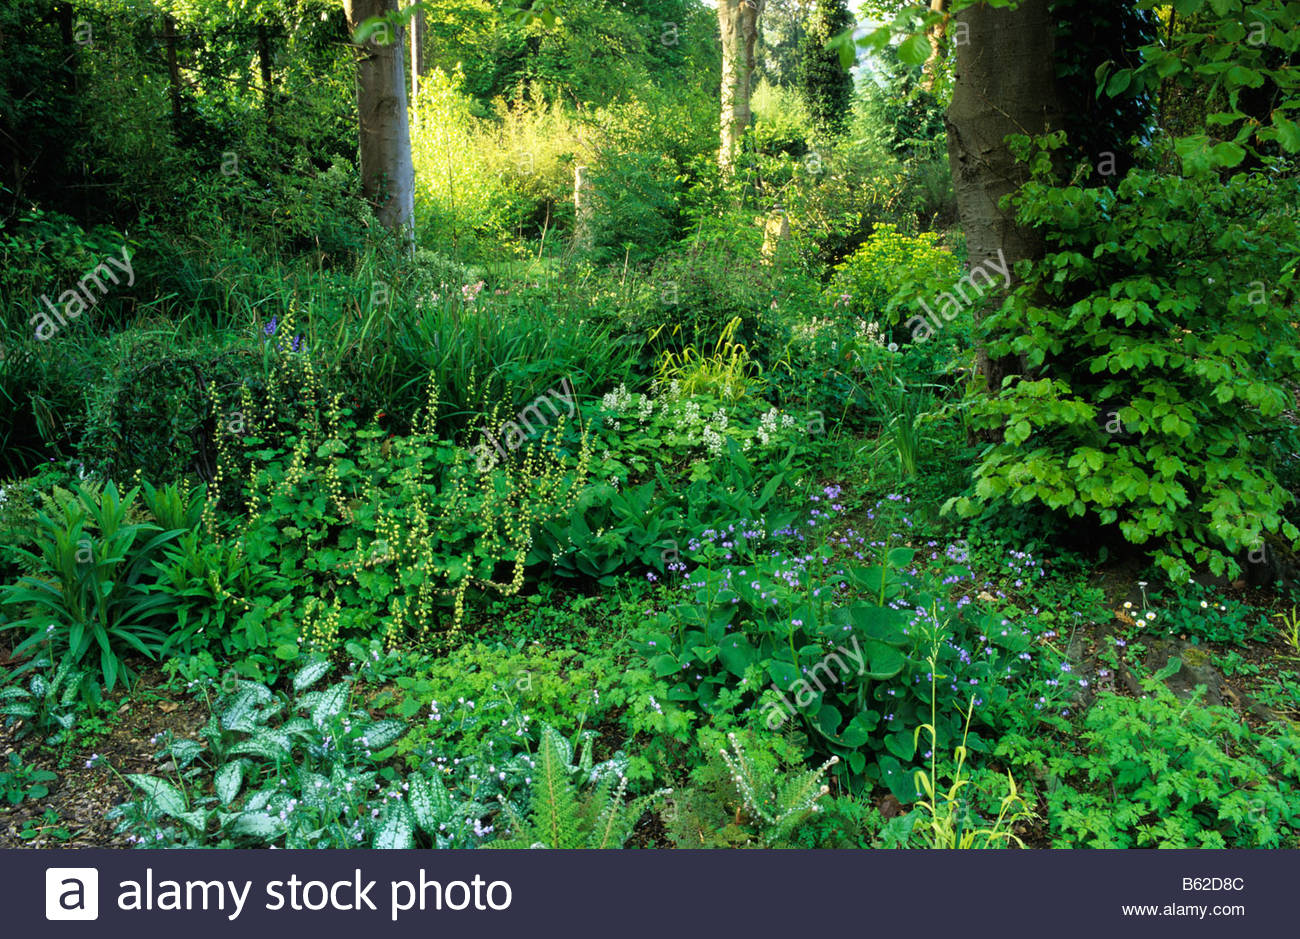 How to plant ground cover for shady areas - Browns Hill Gloucestershire Woodland Shade Garden With Groundcover Plants Brunnera Pulmonaria Tiarella Tellima Grandiflora Stock